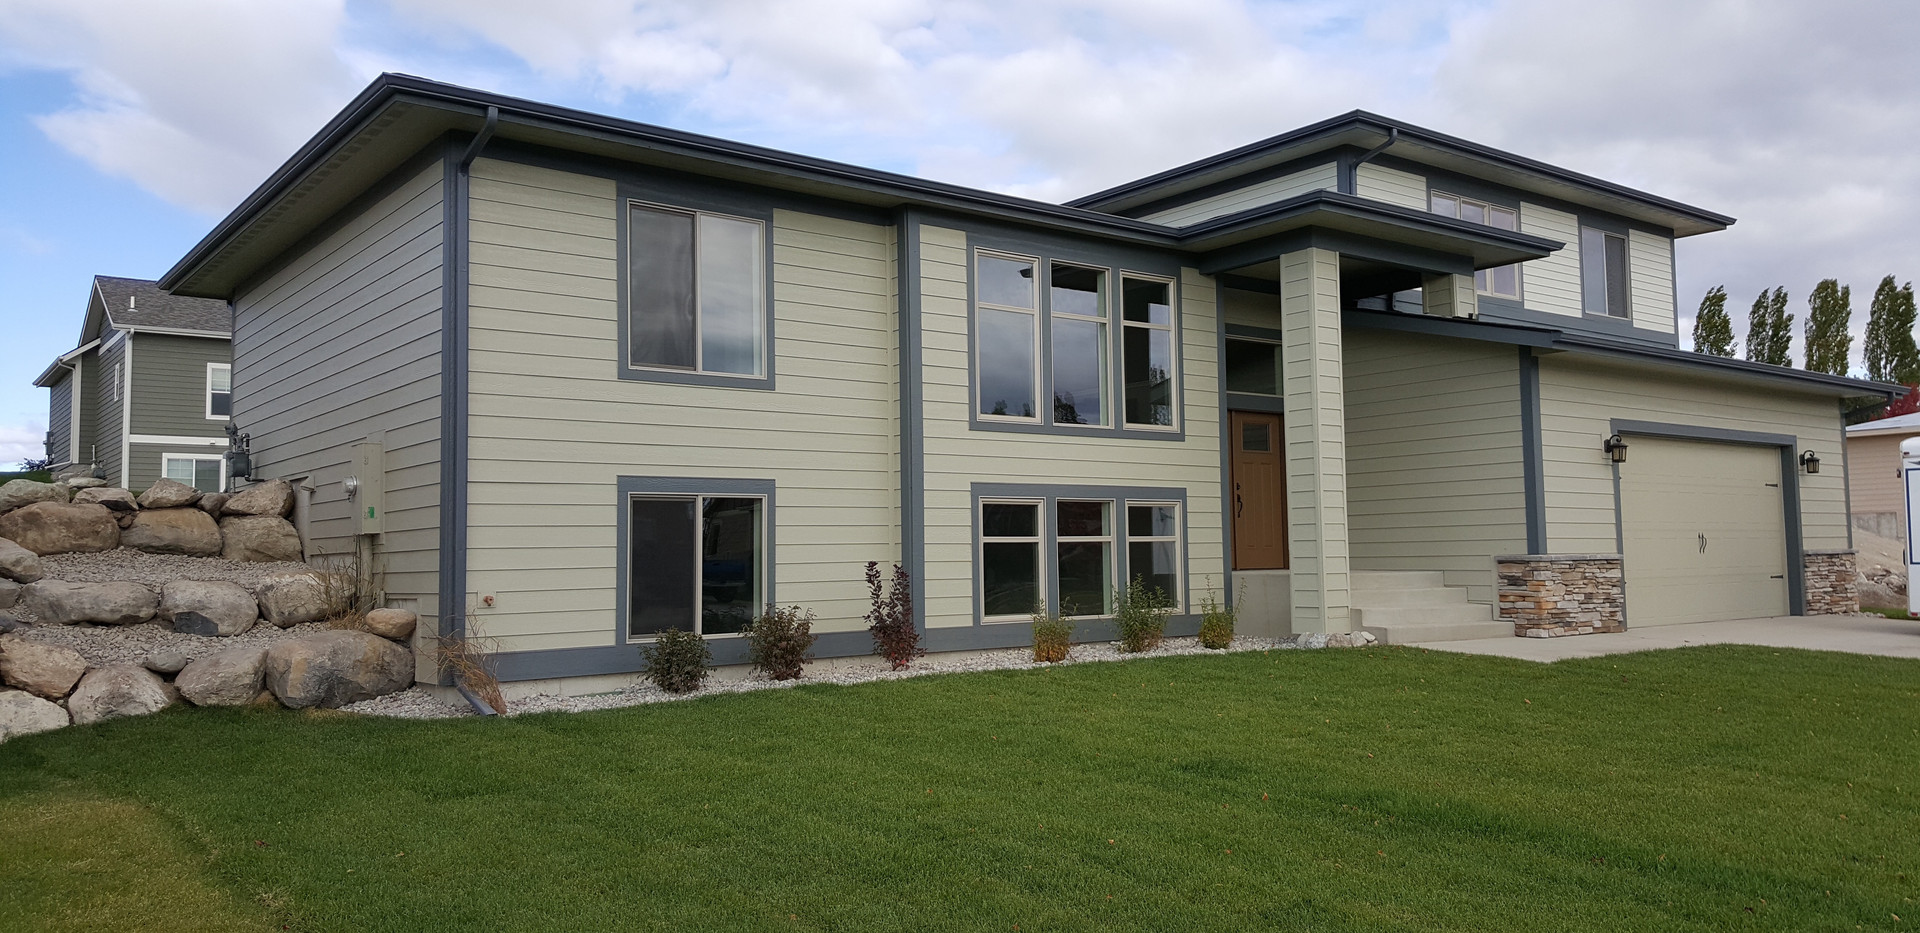 Exterior Painting of Contemporary home in Kalispell, MT